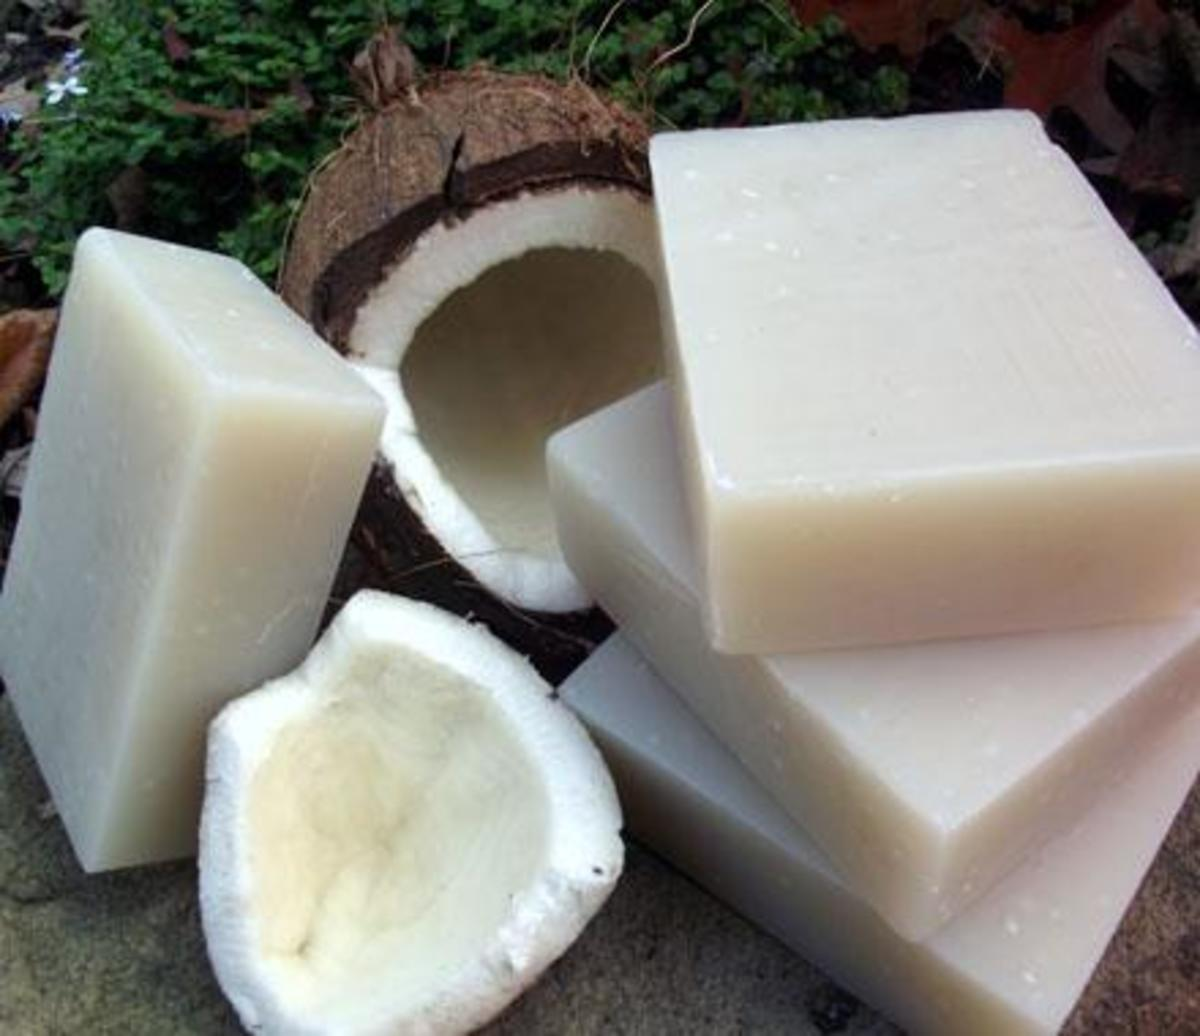 Organically-made coconut shampoo bars